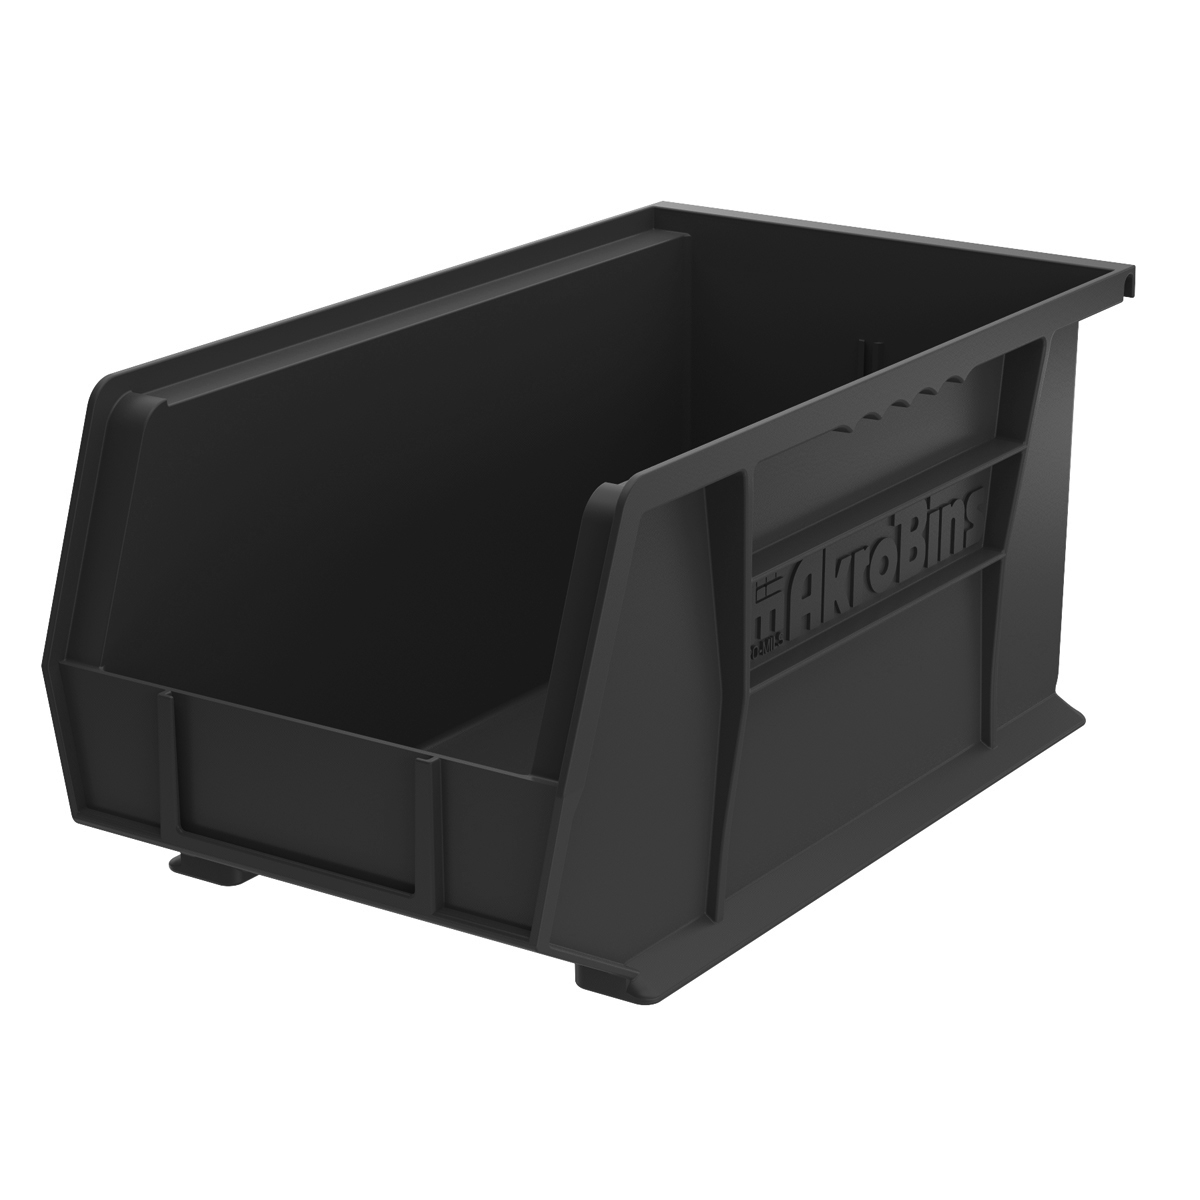 AkroBin 14-3/4 x 8-1/4 x 7, Black (30240BLACK).  This item sold in carton quantities of 12.